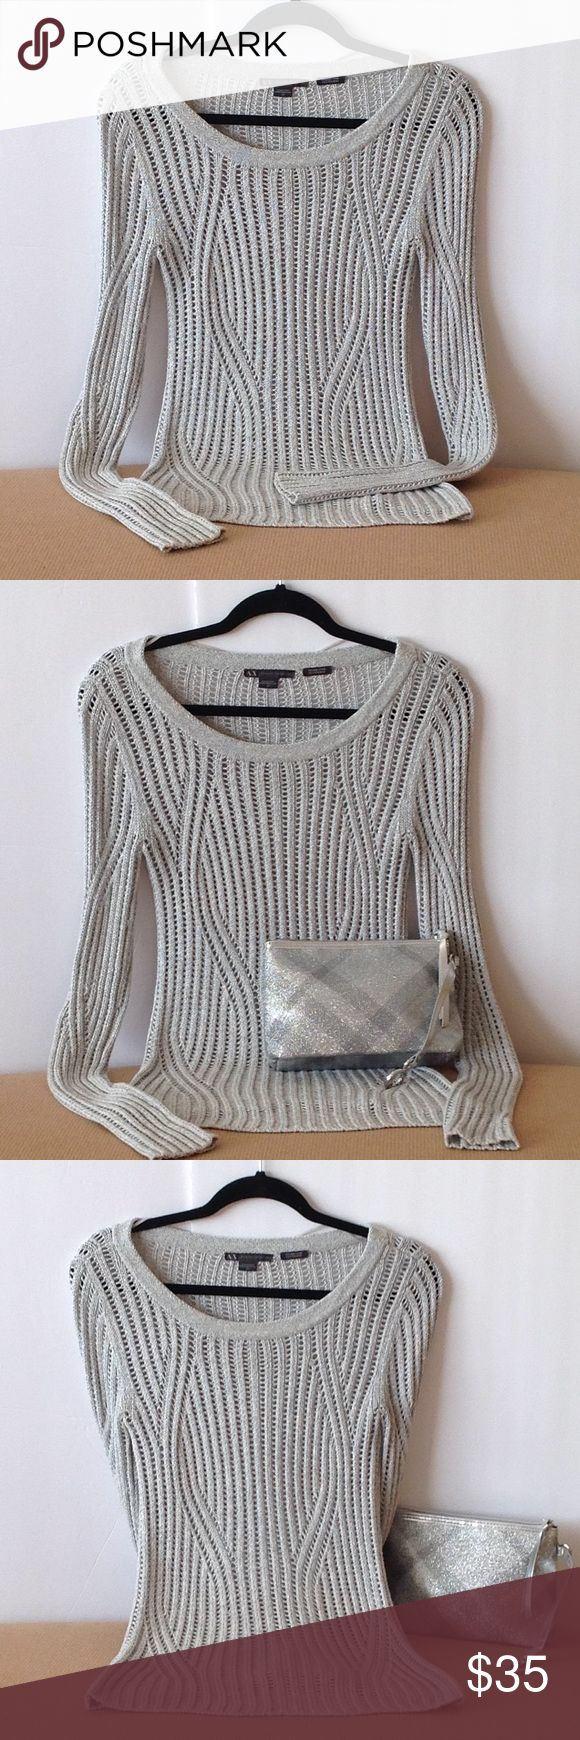 🍃🌹Armani Exchange - 'Ice Grey Italian Yarn' Top Super Cute and in Excellent Condition Armani Exchange Scoop Neck Italian Top. Size Small-Petite. Iced Grey with Subtle Silver threading. Look at the Back of this Top. It's designed in Perfect Formation!! No Snags or Loose Threads. Perfect with Designer Jeans or Pencil Skirts. Price is Firm🍃🌹. Armani Exchange Tops